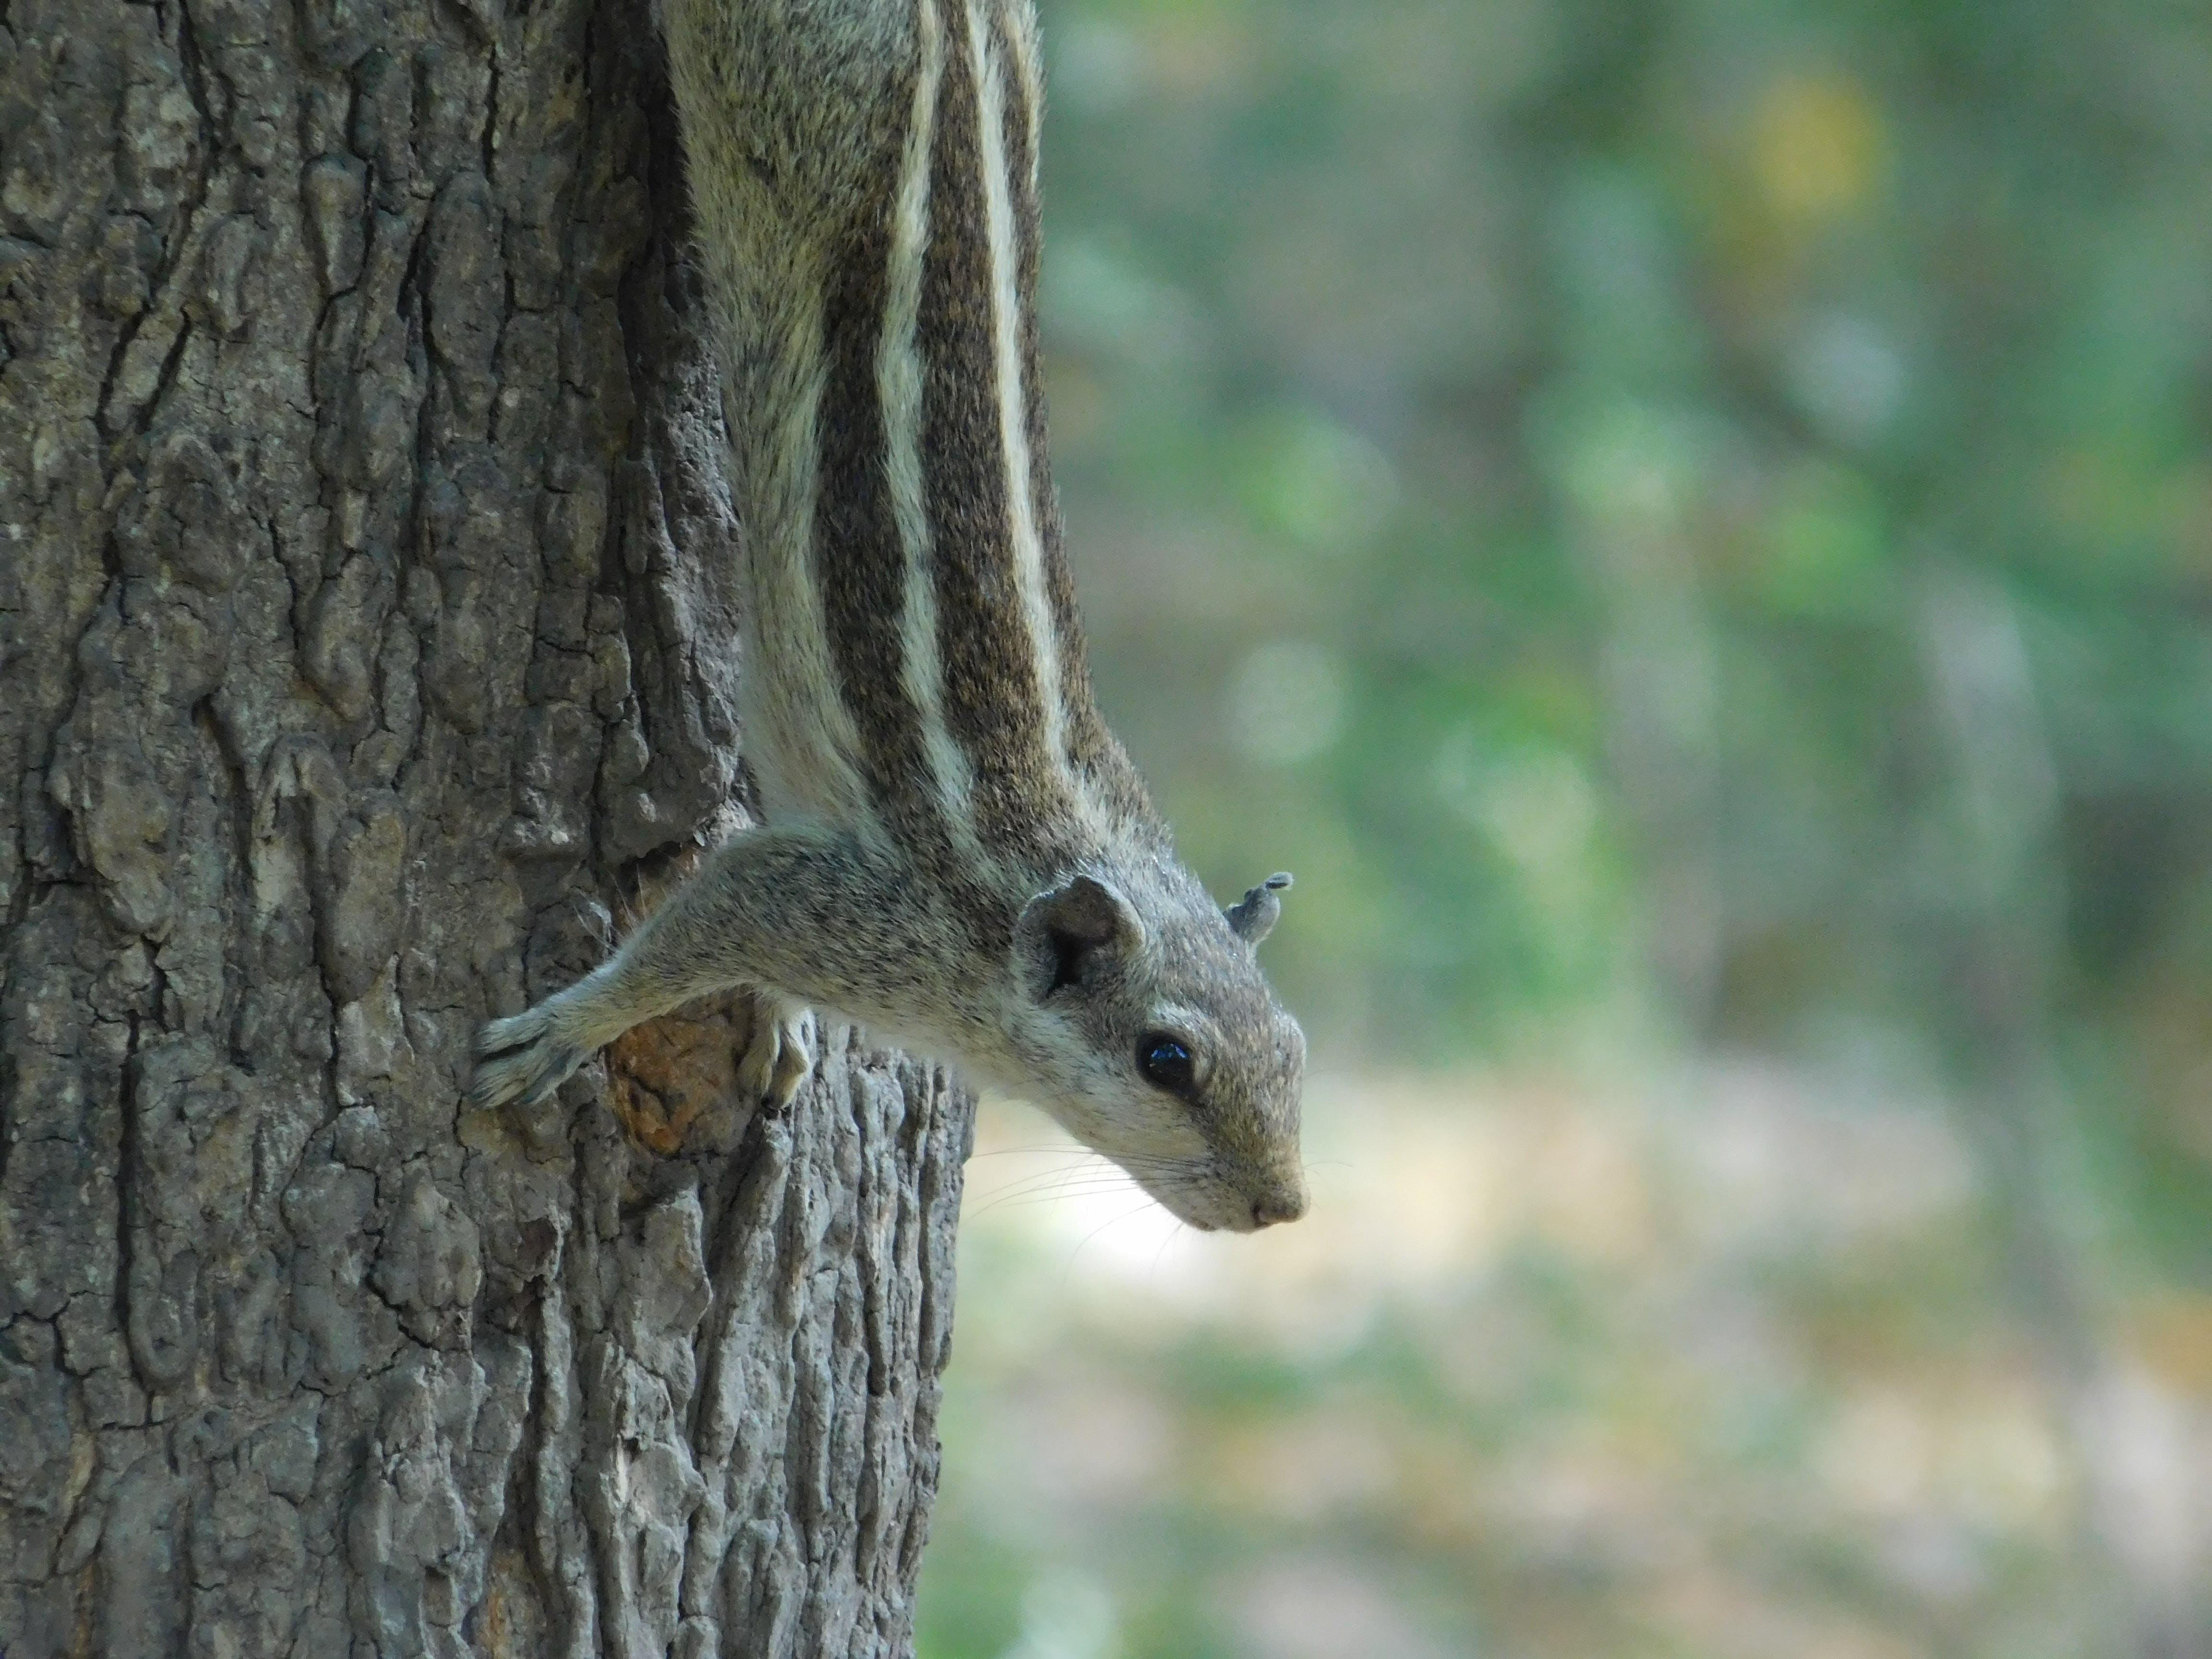 Brown and Gray Squirrel on Brown Tree Trunk